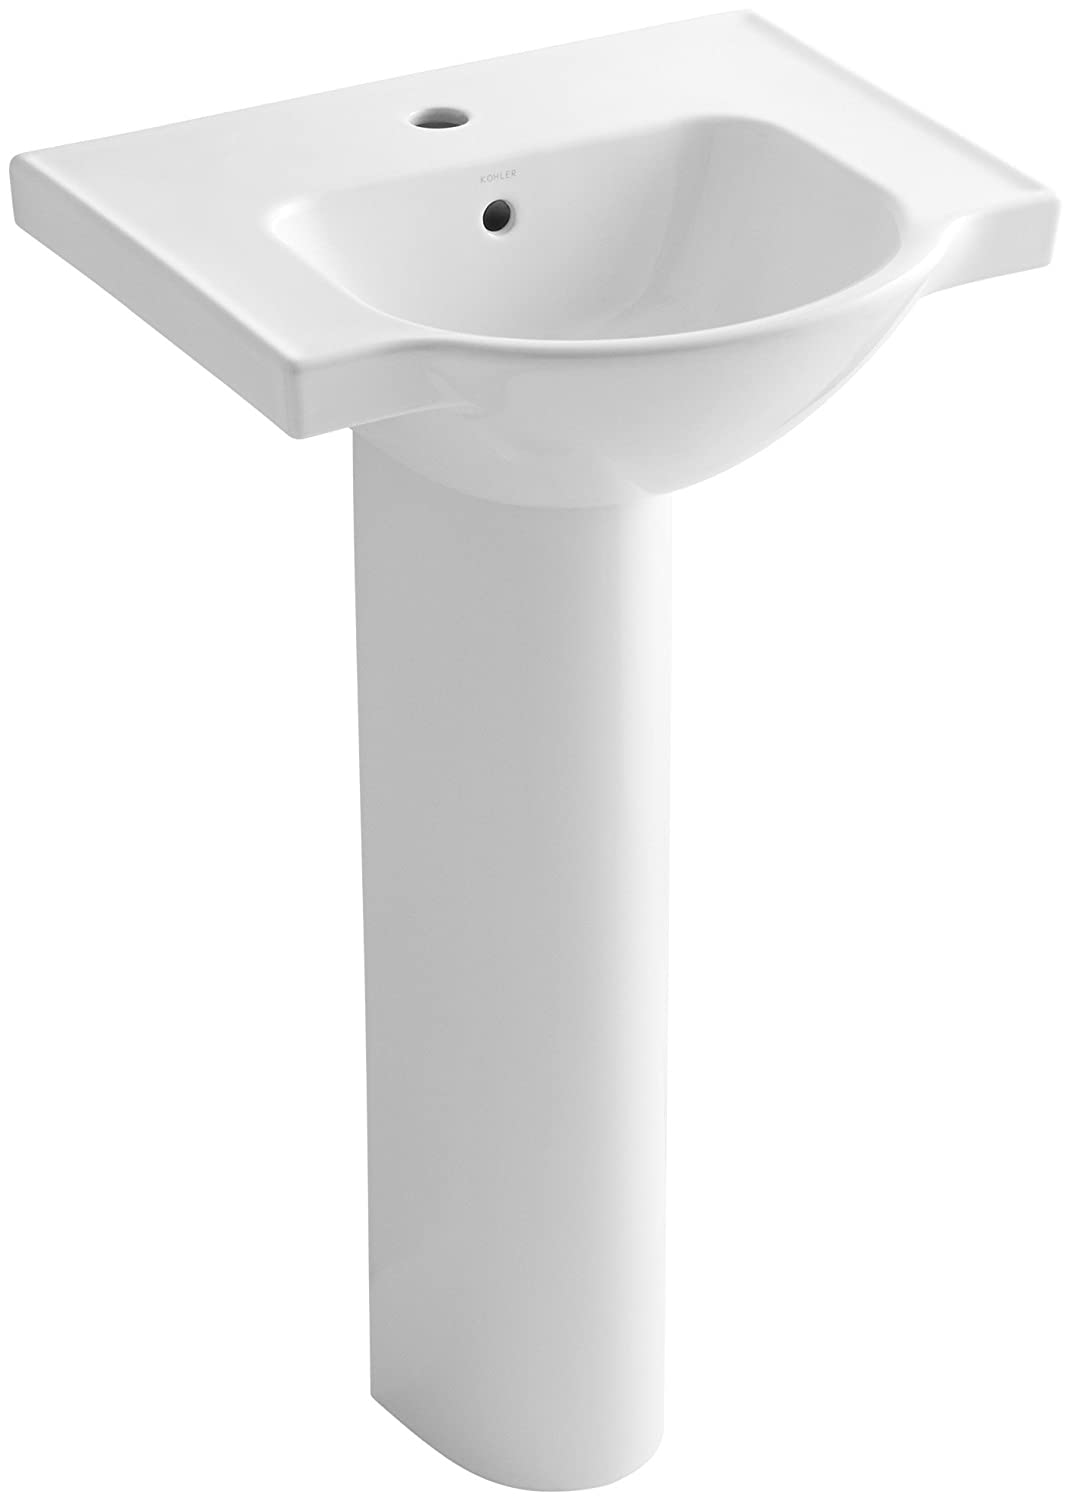 KOHLER K-5265-1-0 Veer Pedestal Bathroom Sink with Single Faucet ...